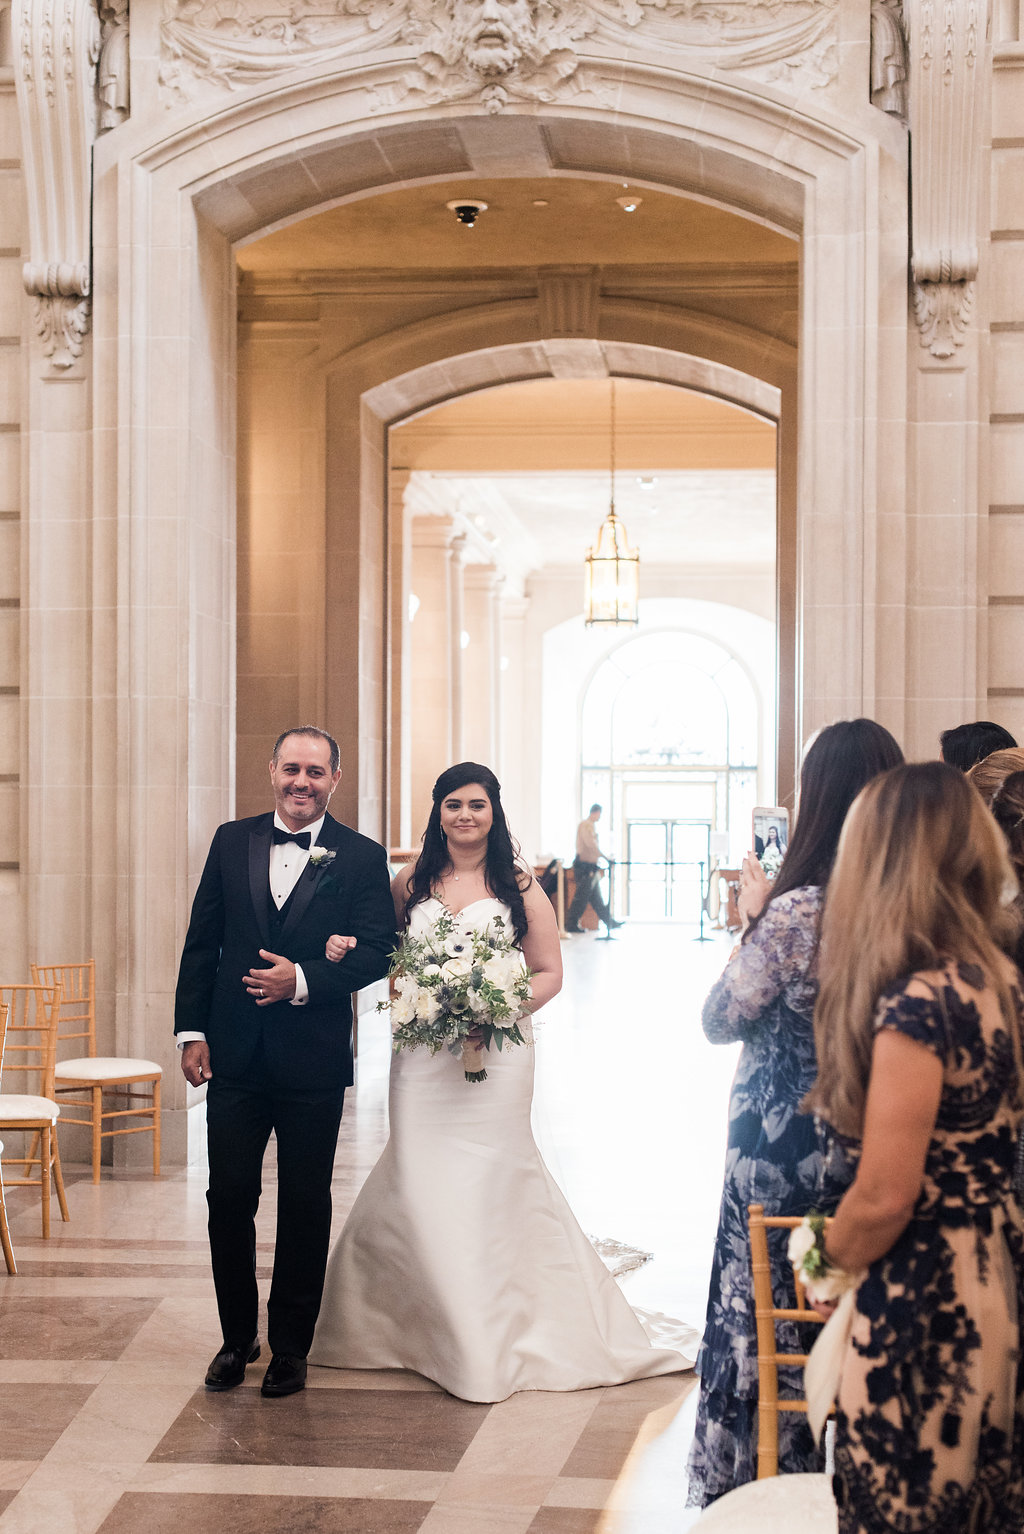 John&Ameera_CityHallWedding-66.jpg